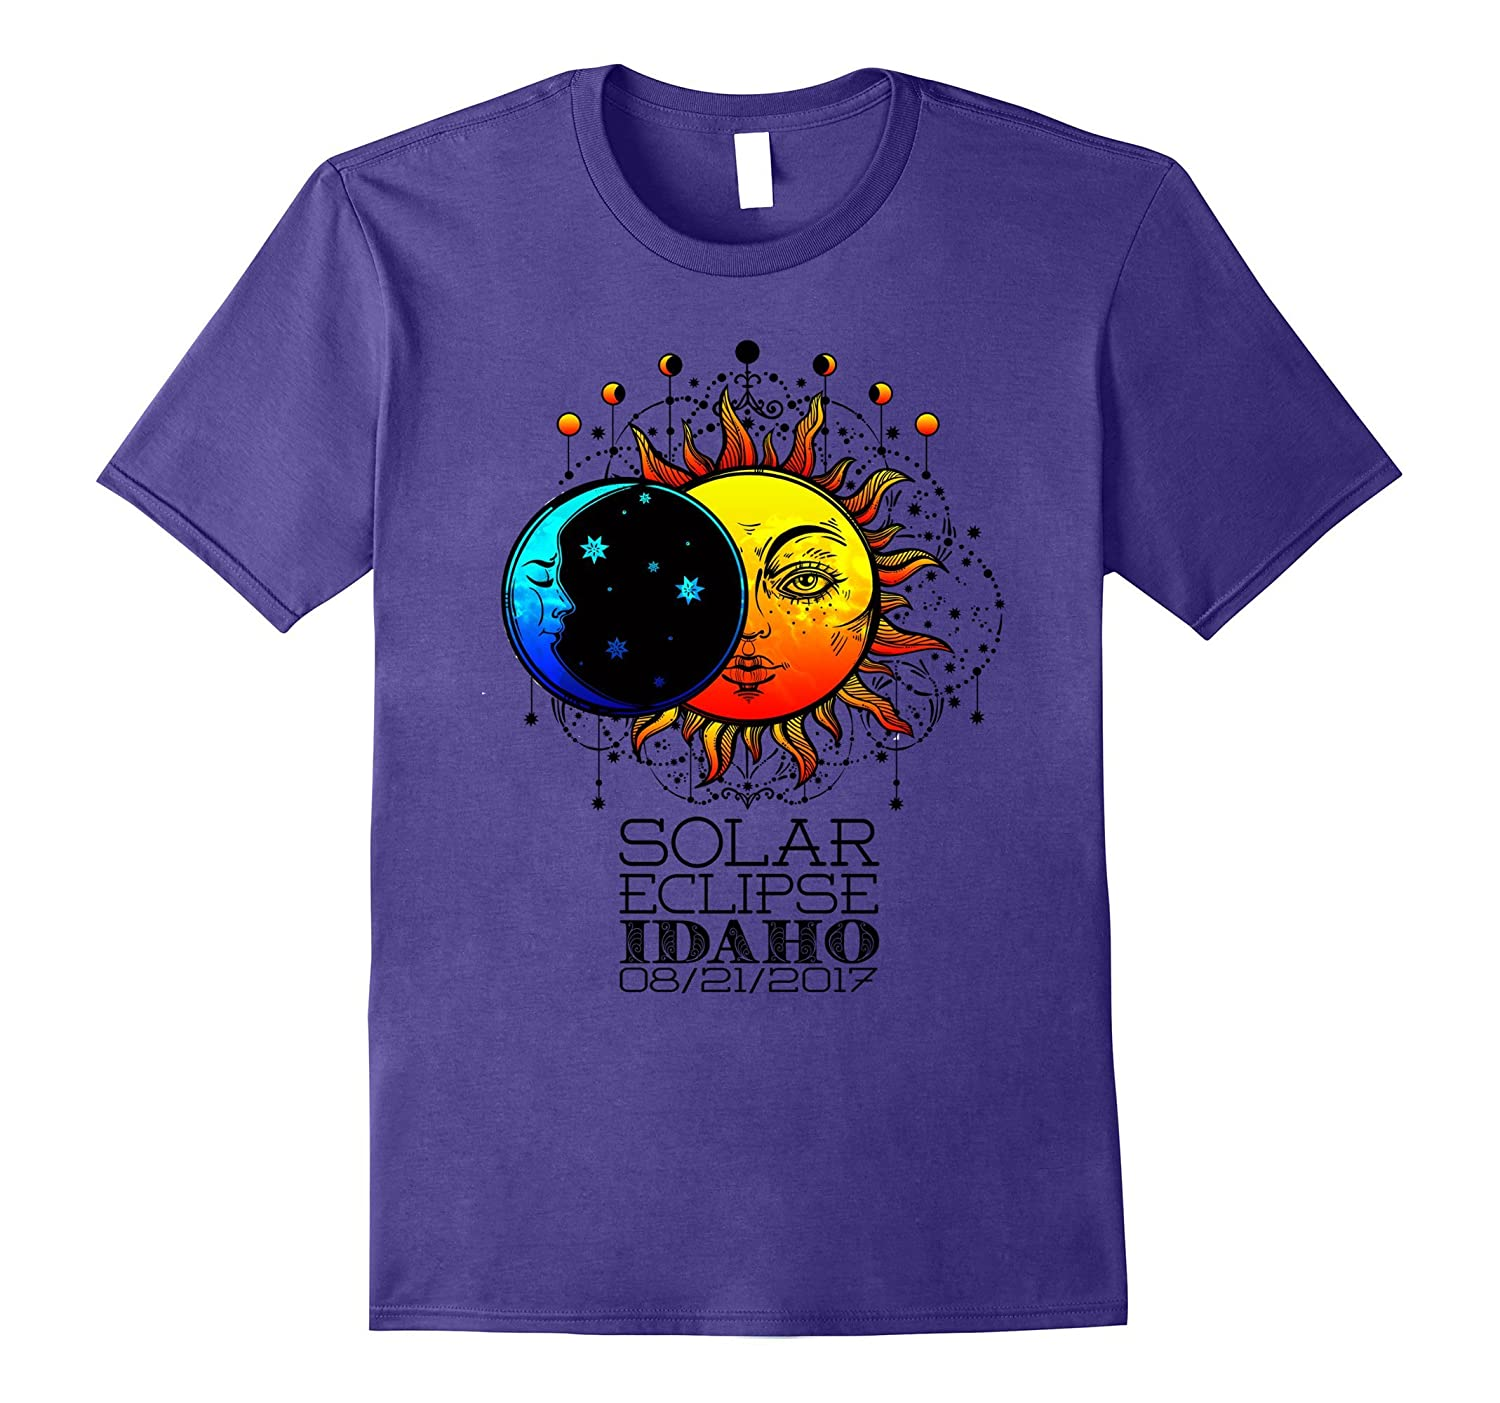 Total Solar Eclipse Idaho Tshirt 08/21/2017-Art